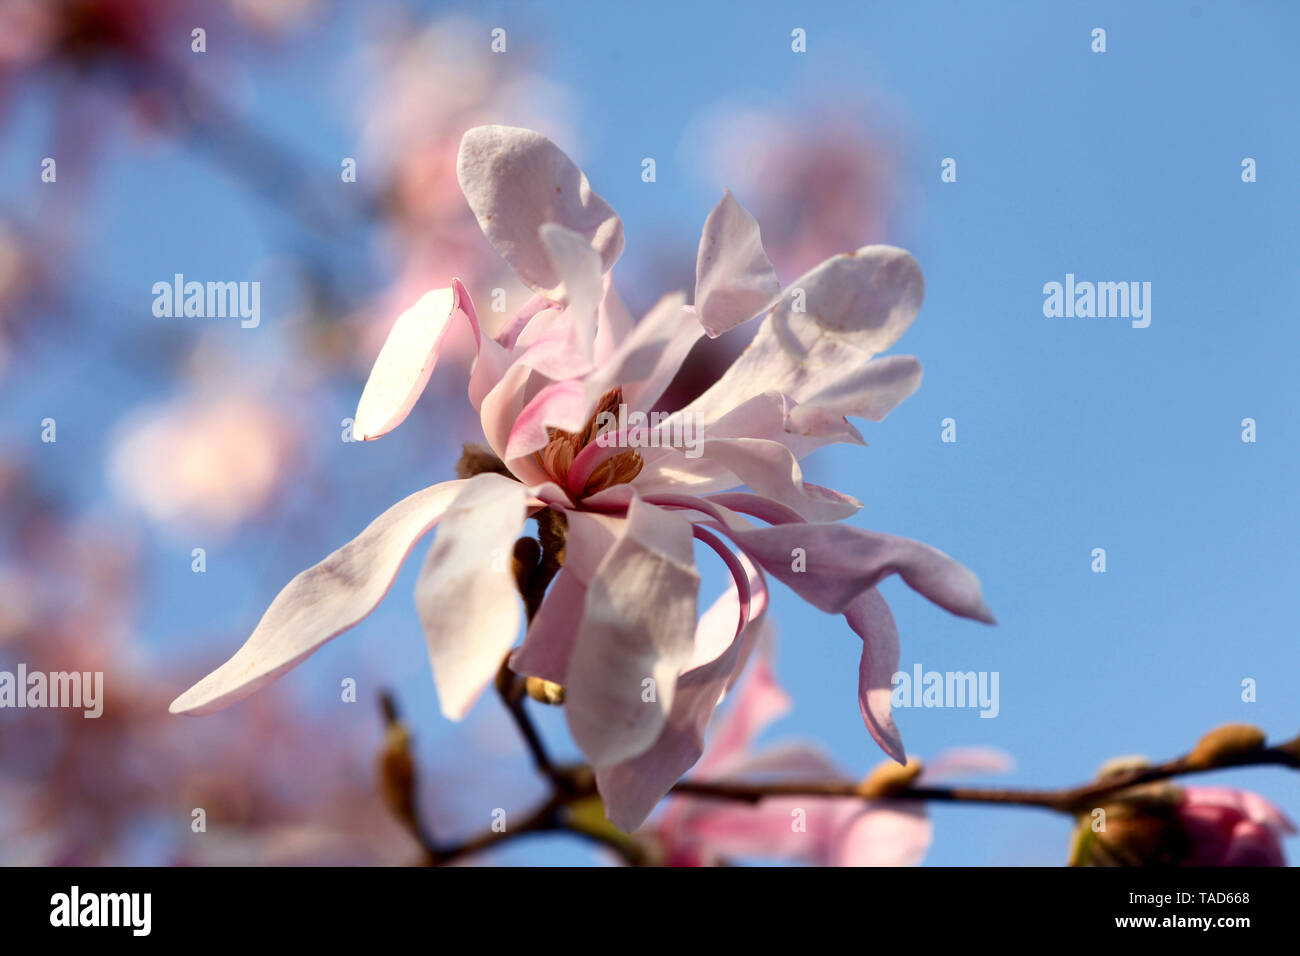 Blossoms of magnolia tree, close-up - Stock Image